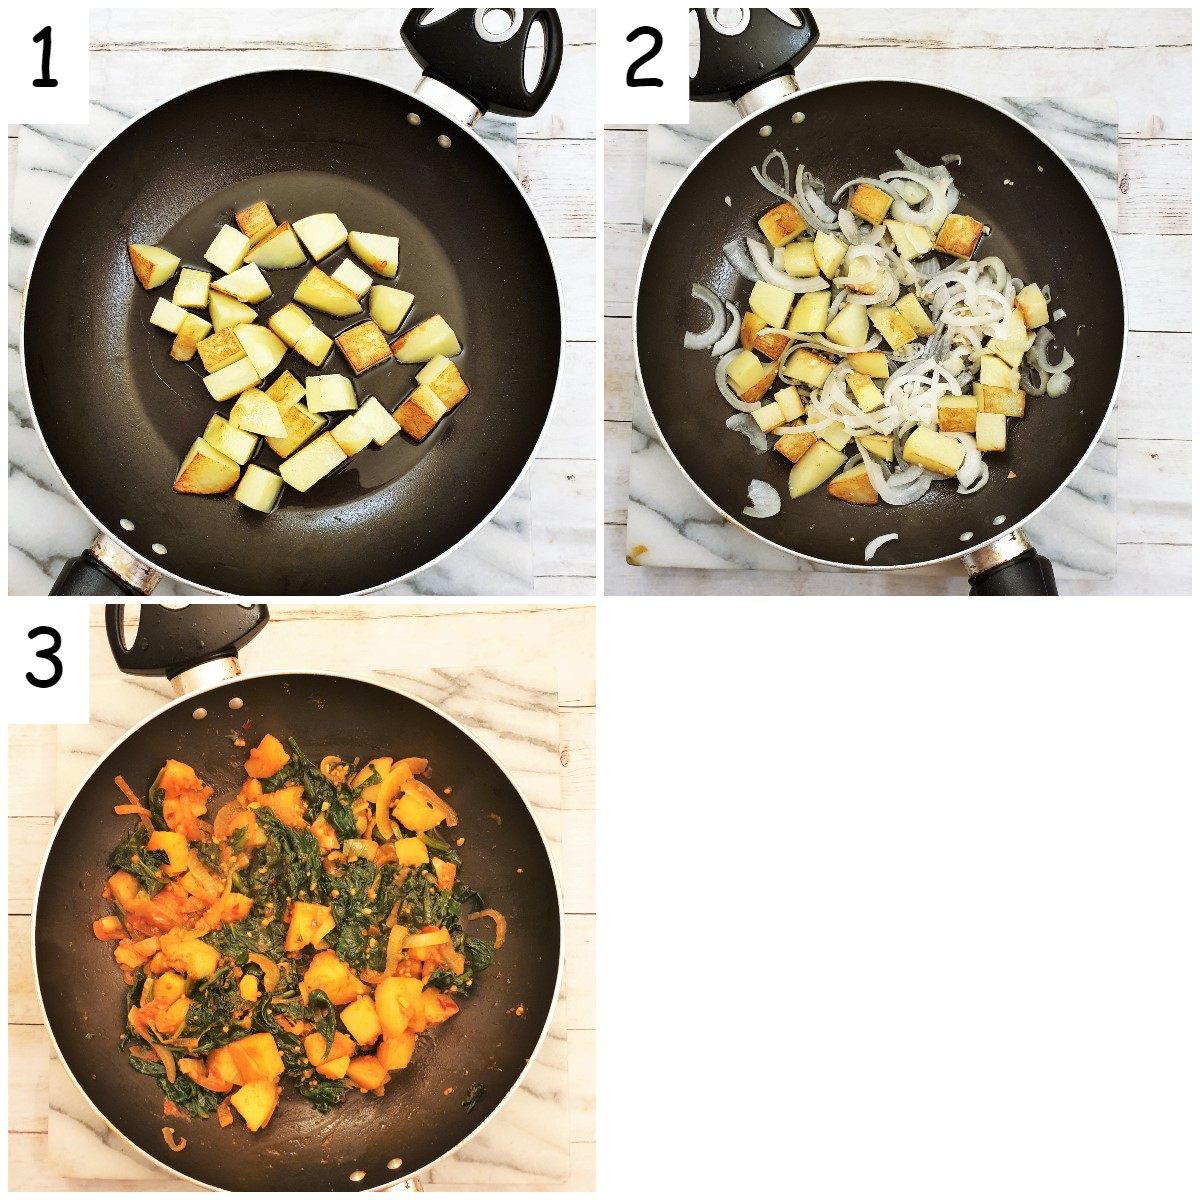 Steps to make saag aloo.